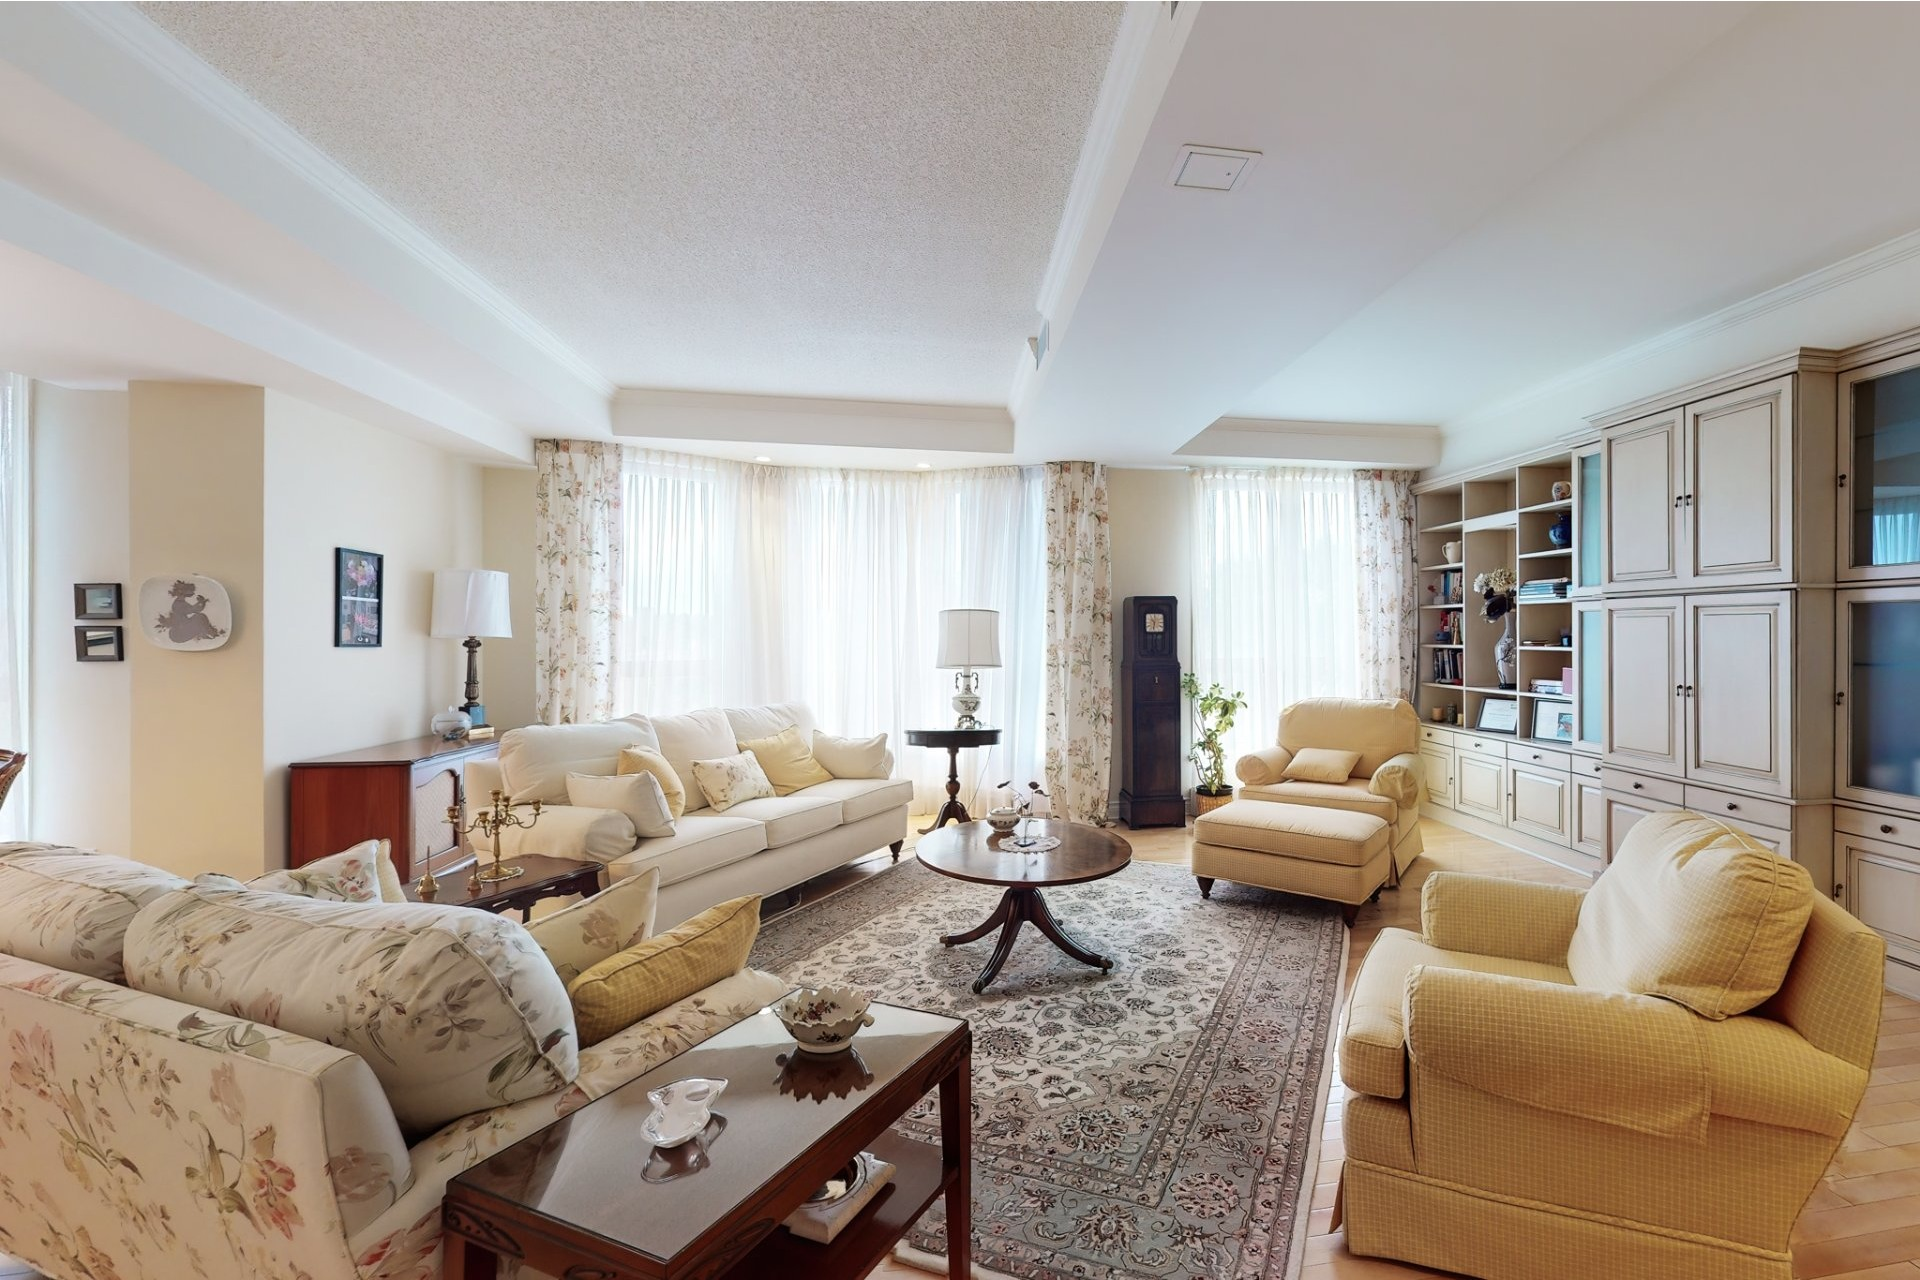 Apartment For sale Mont-Royal - 8 rooms